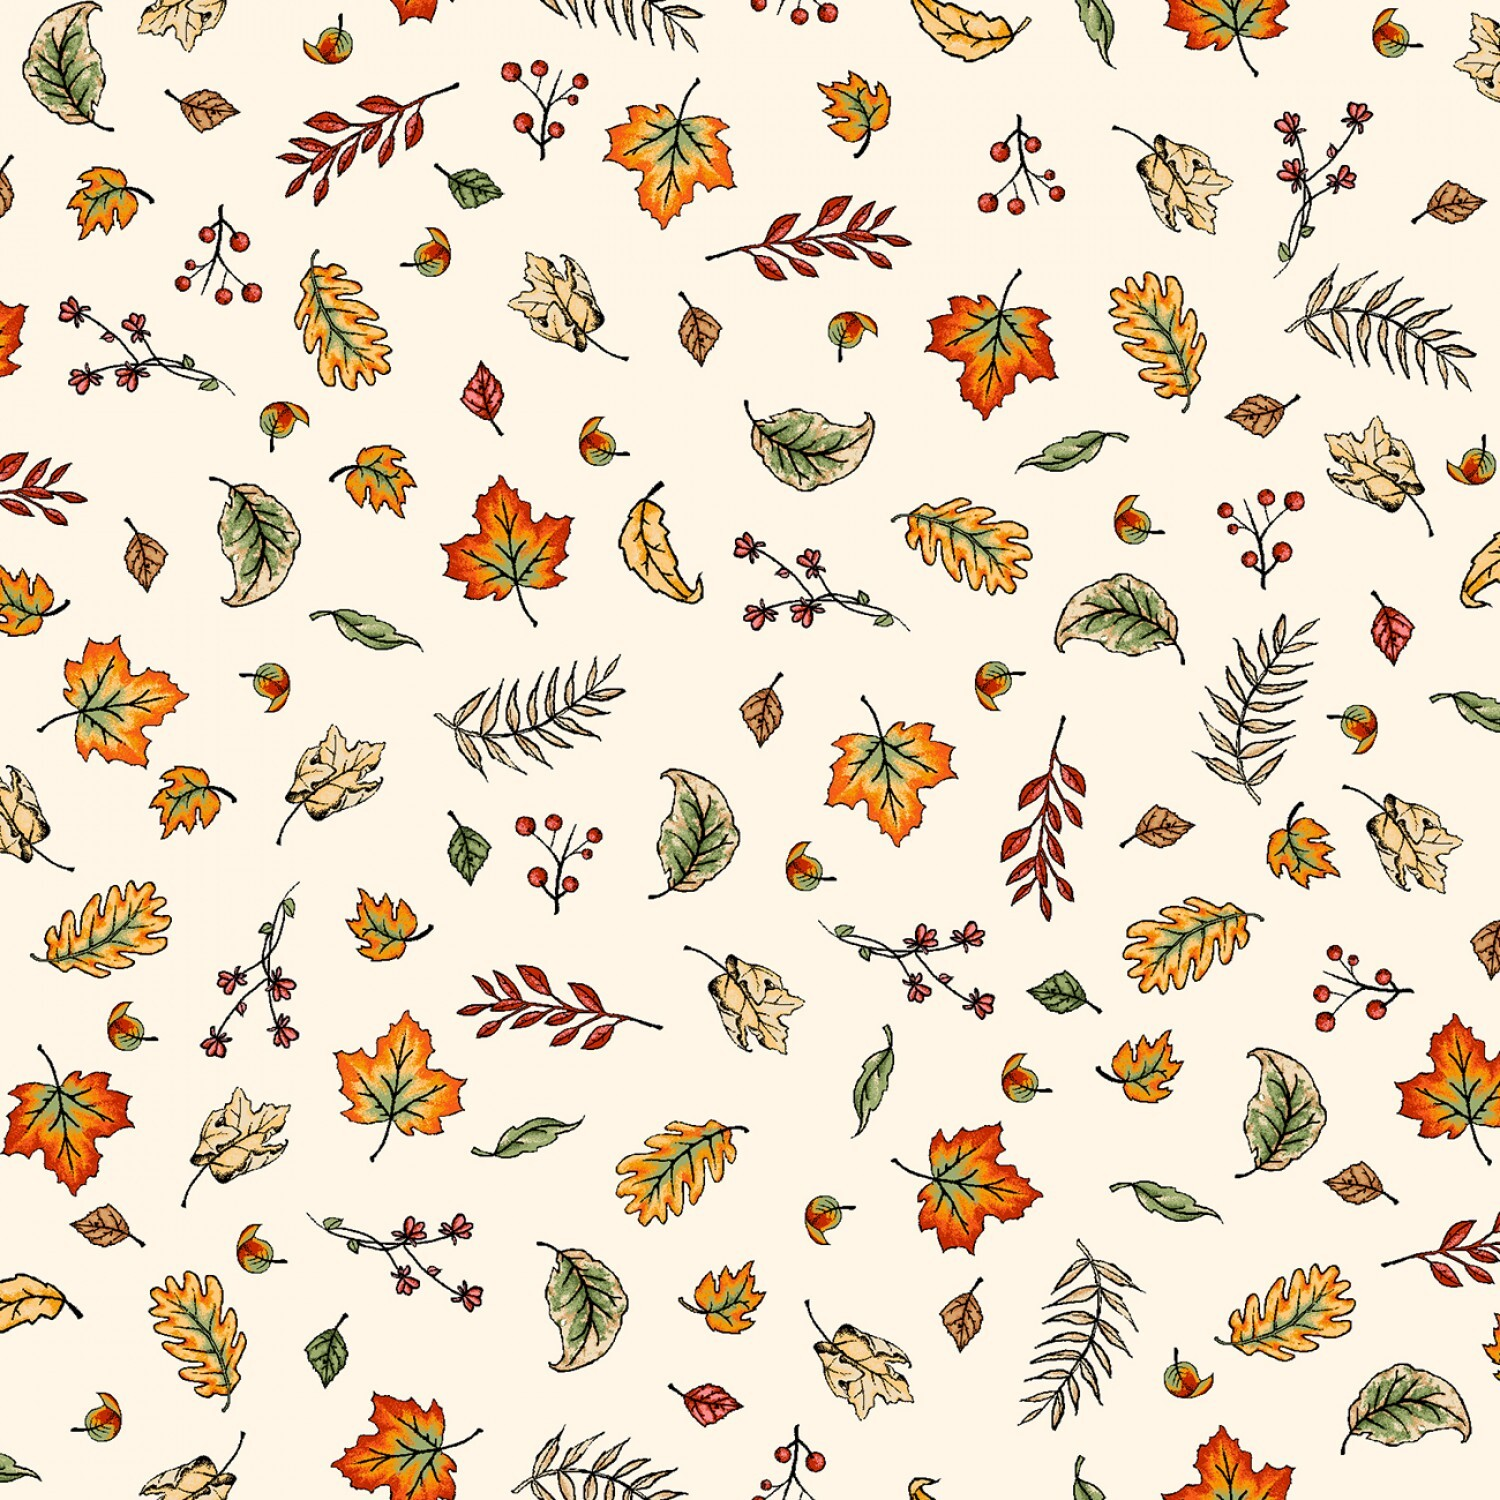 Sweater Weather - Cream Blowing Leaves - 1/2m cut 57981